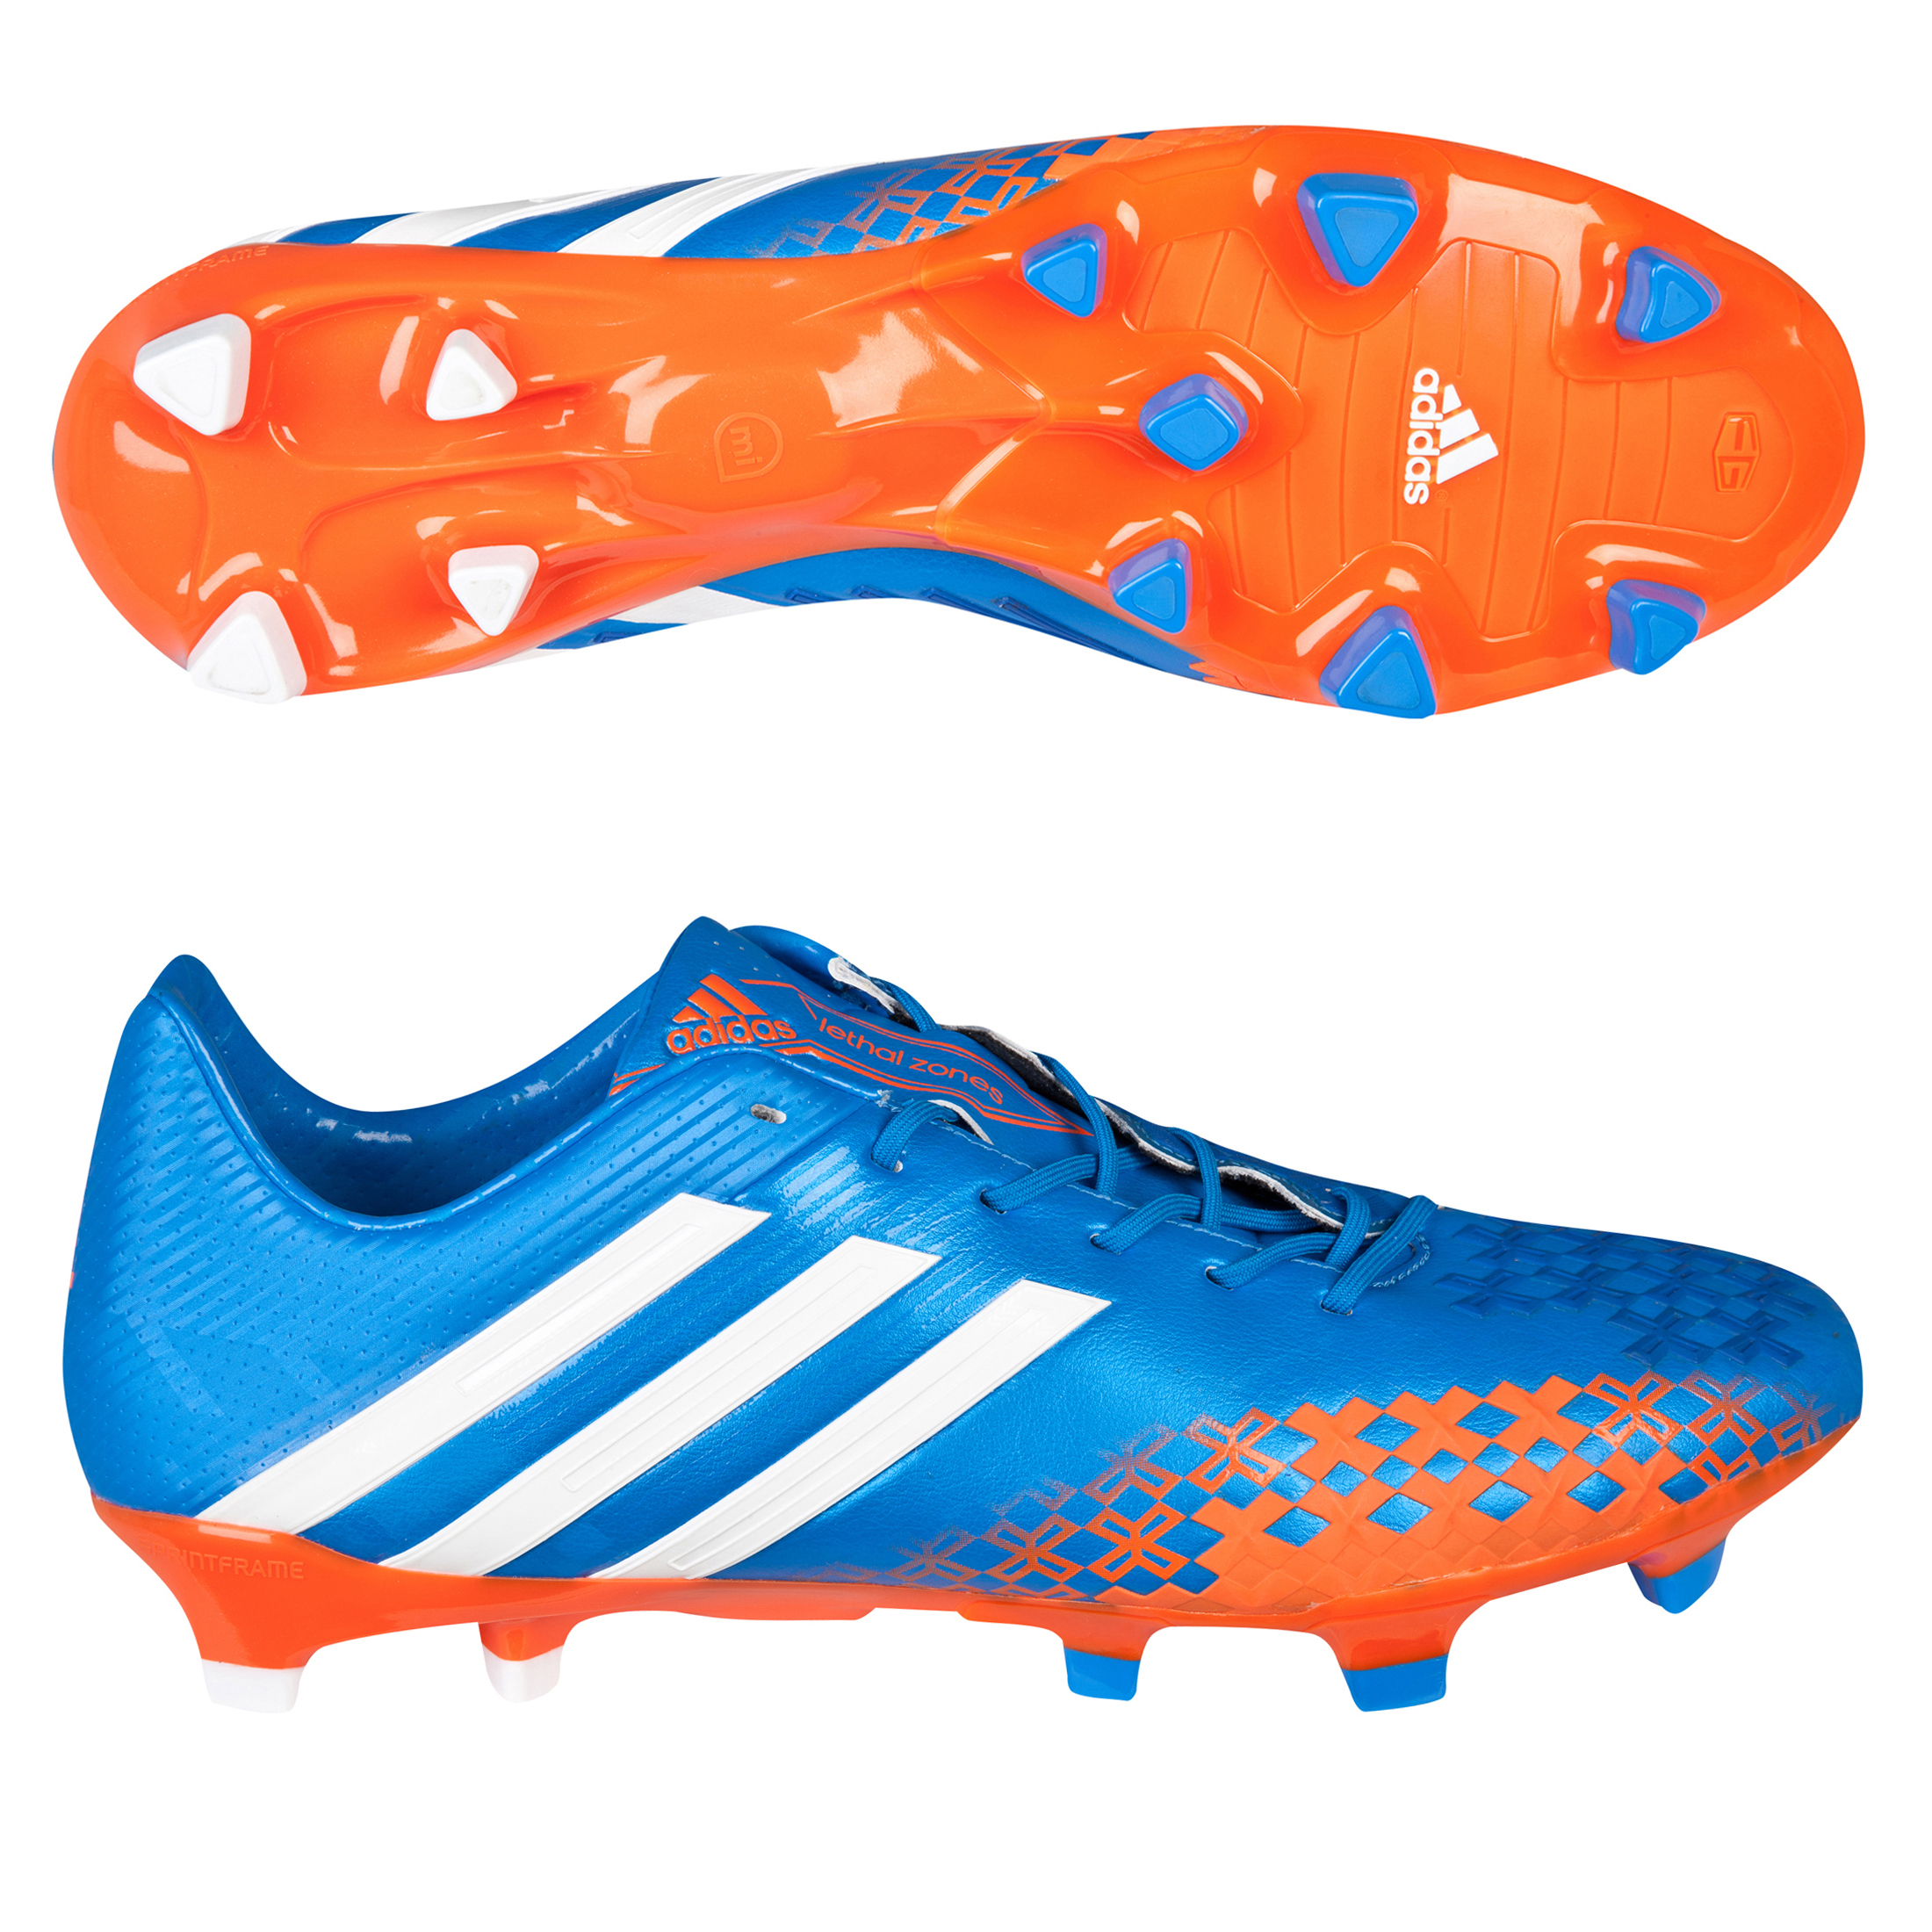 Adidas Predator LZ TRX Firm Ground Football Boots Blue